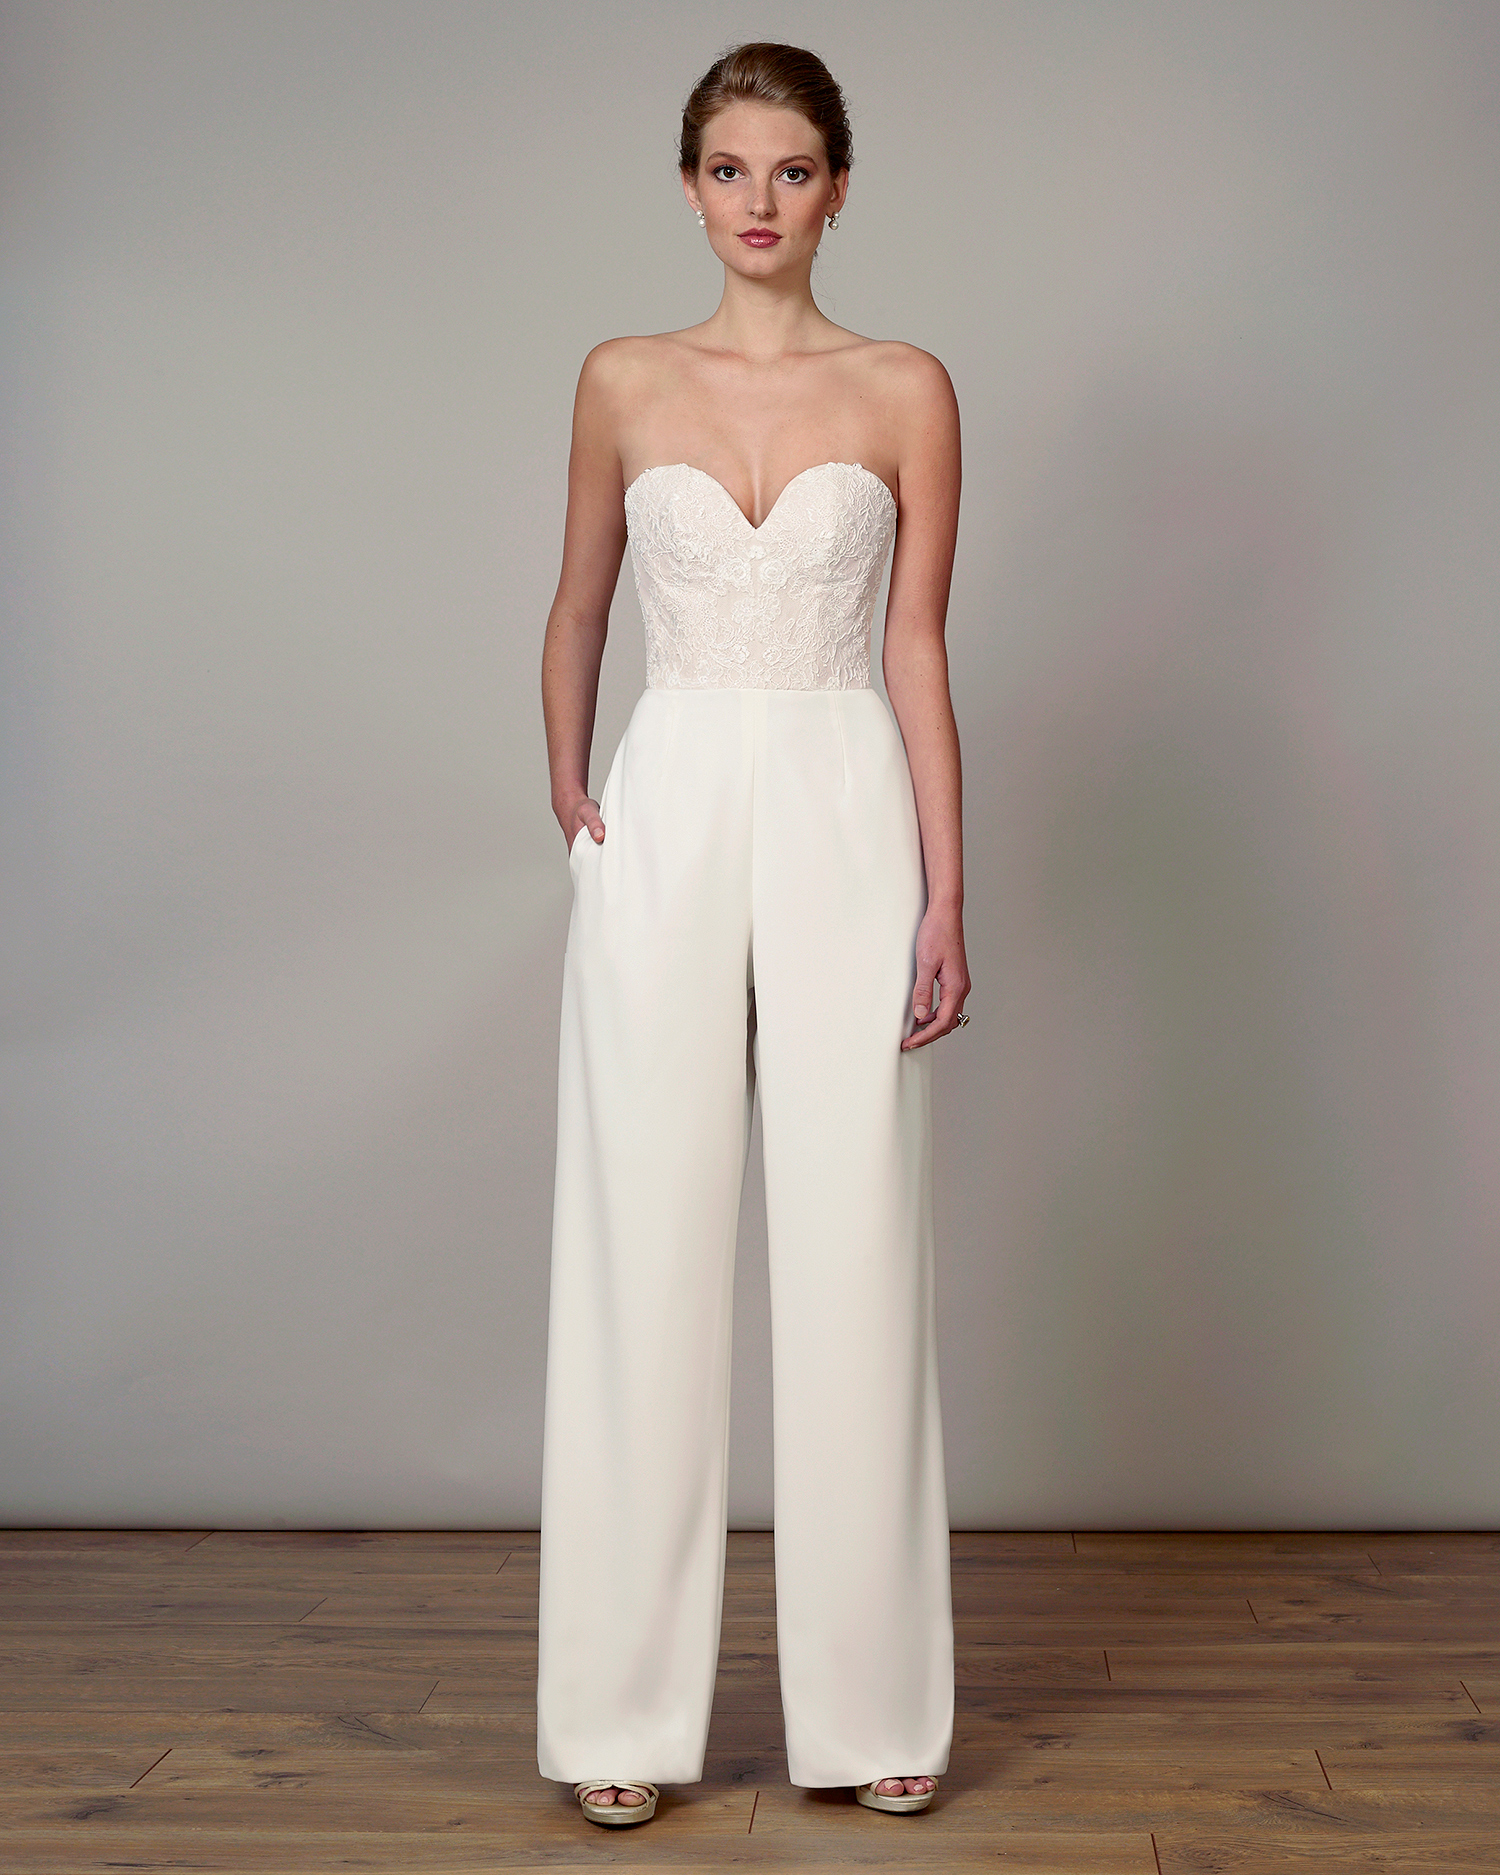 71 Chic Wedding Suits For Brides